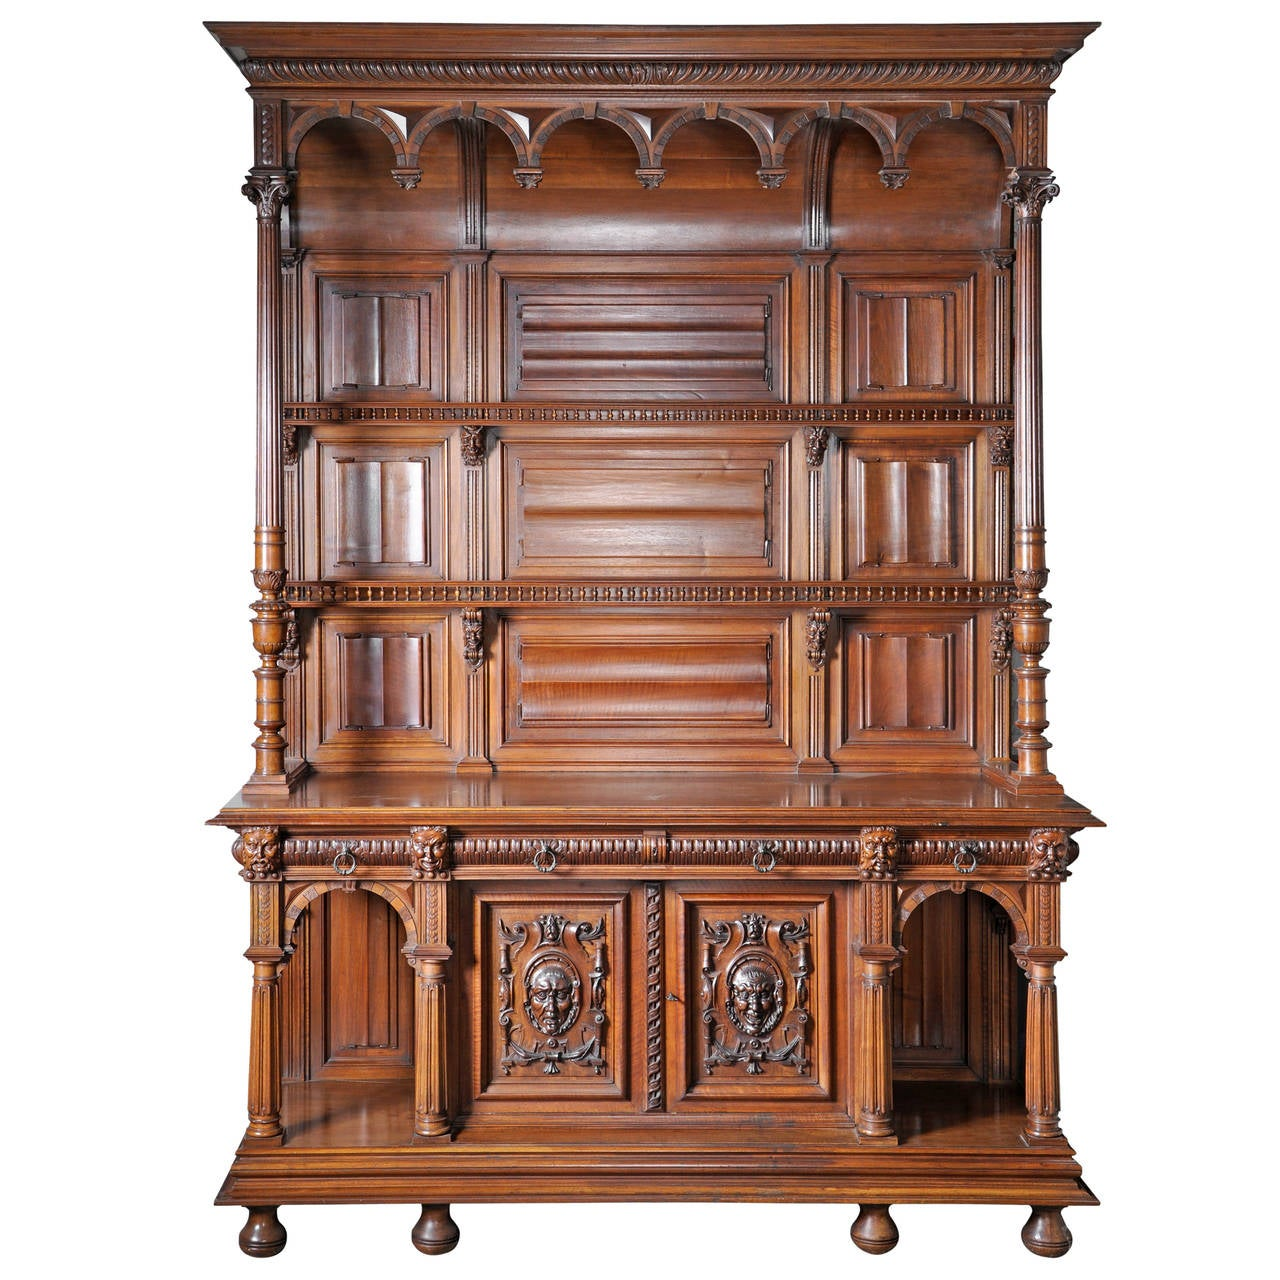 Neo-Gothic Style Carved Walnut Dresser with Satyrs Decor, 19th Century 1